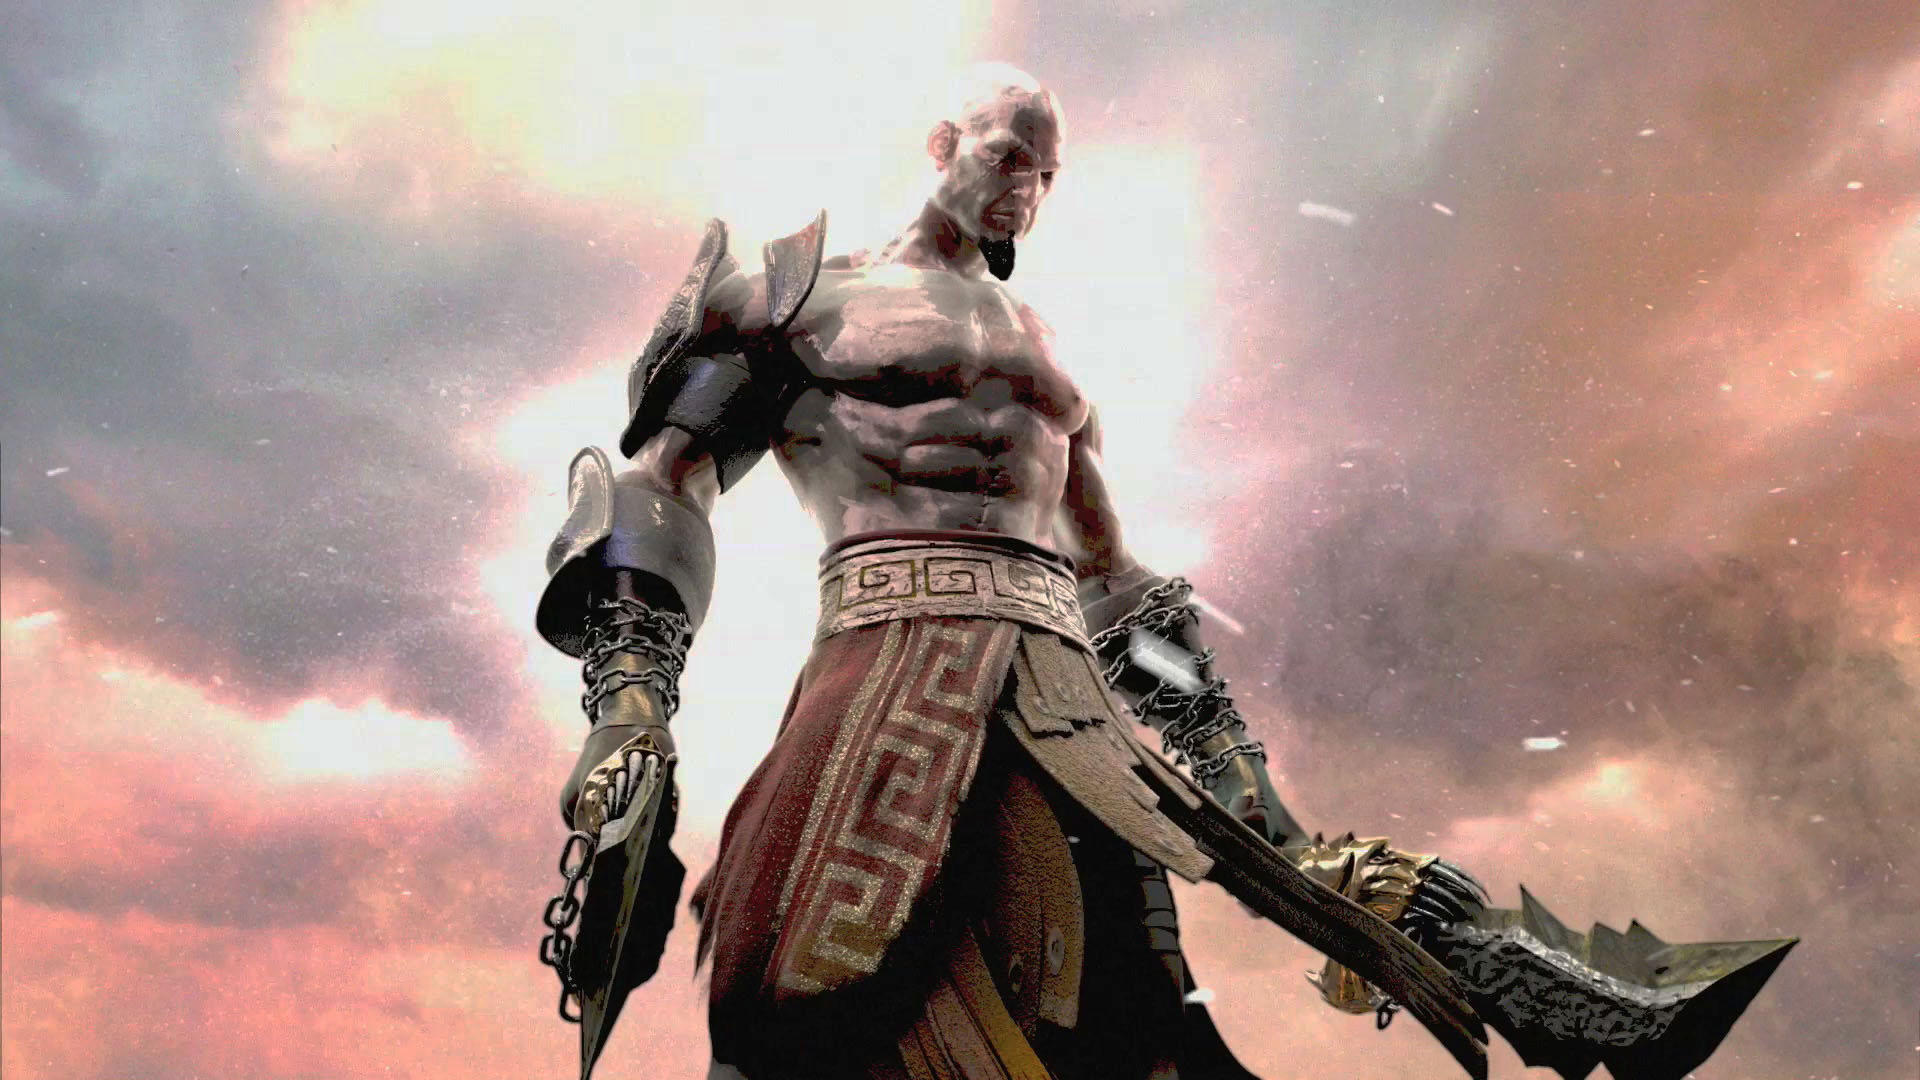 God Of War Wallpaper Download